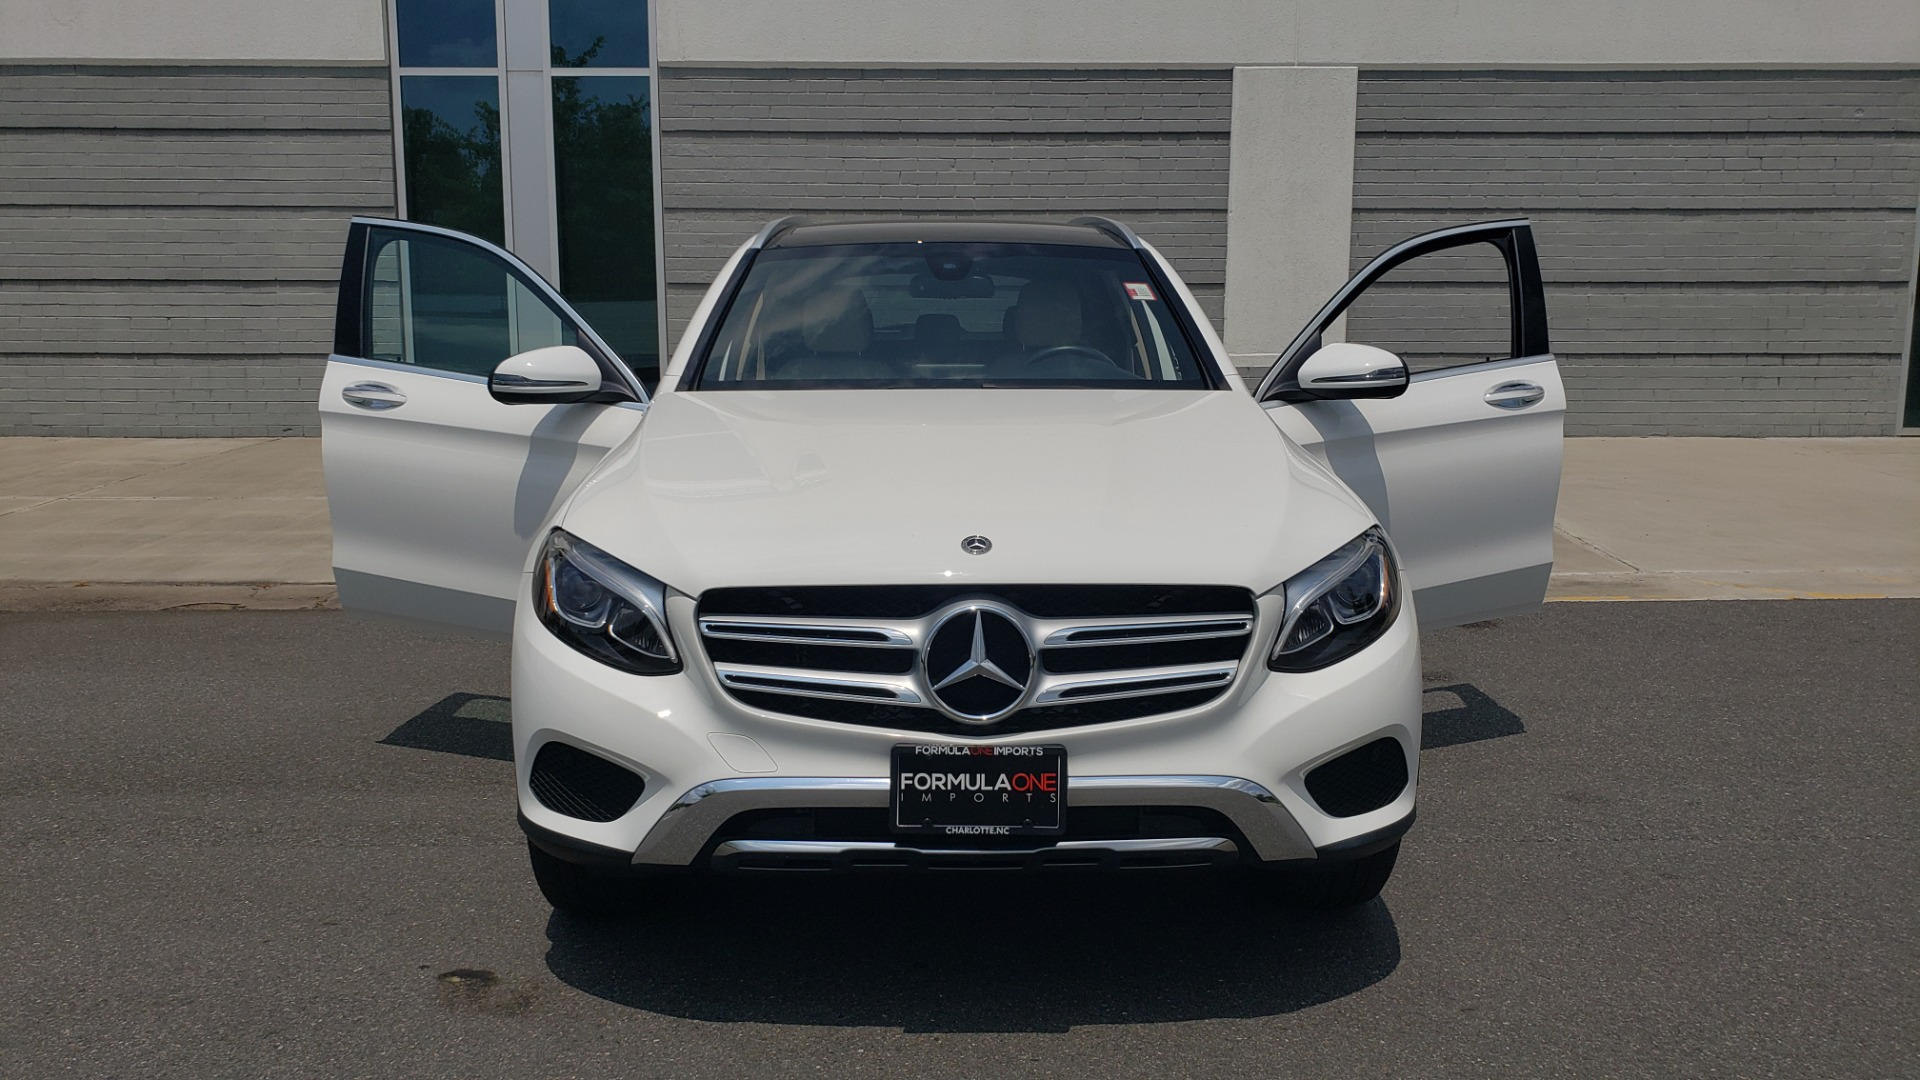 Used 2018 Mercedes-Benz GLC 300 PREMIUM 4MATIC / PANO-ROOF / BURMESTER / REARVIEW for sale $36,295 at Formula Imports in Charlotte NC 28227 23